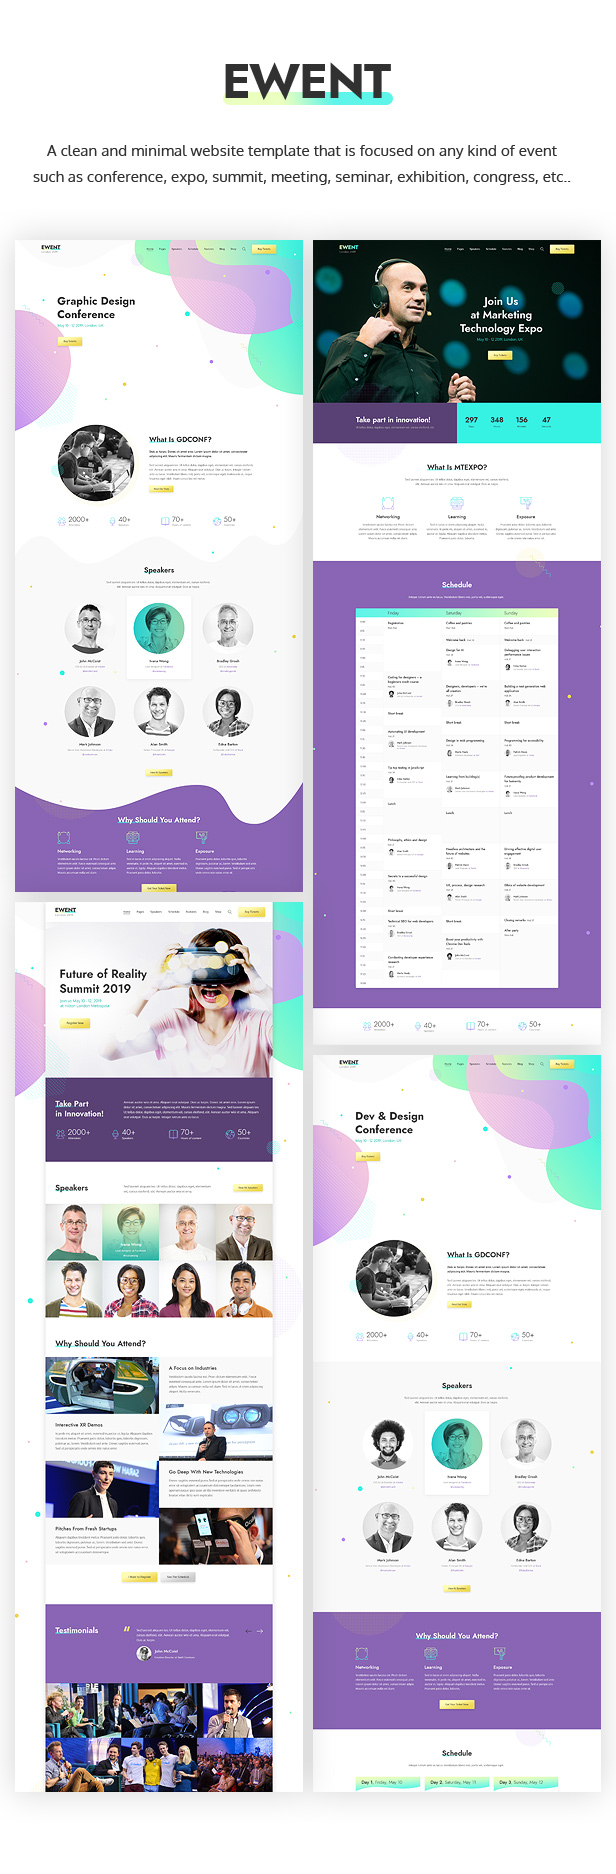 Ewent - Event & Conference Website Template - 1